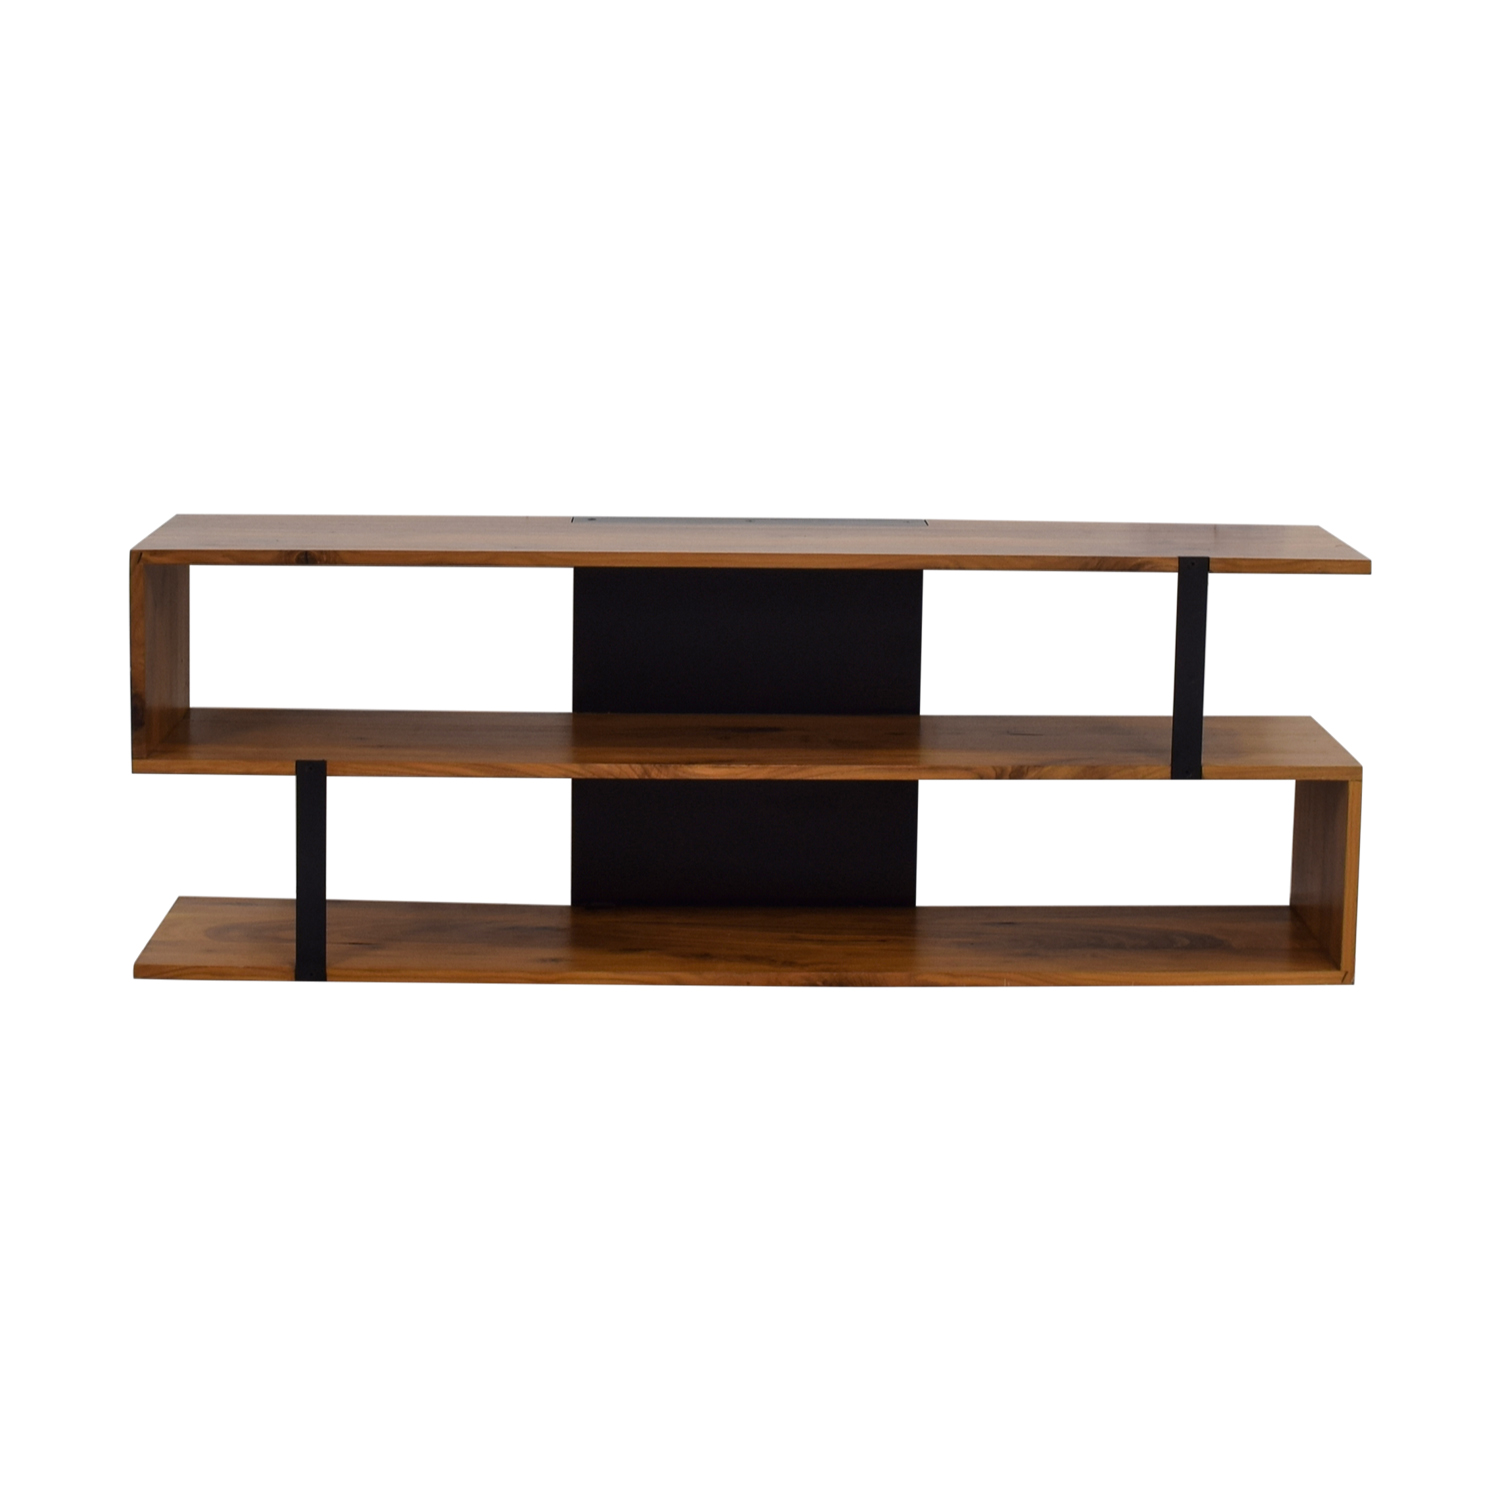 Crate & Barrel Crate & Barrel Austin Media Console for sale